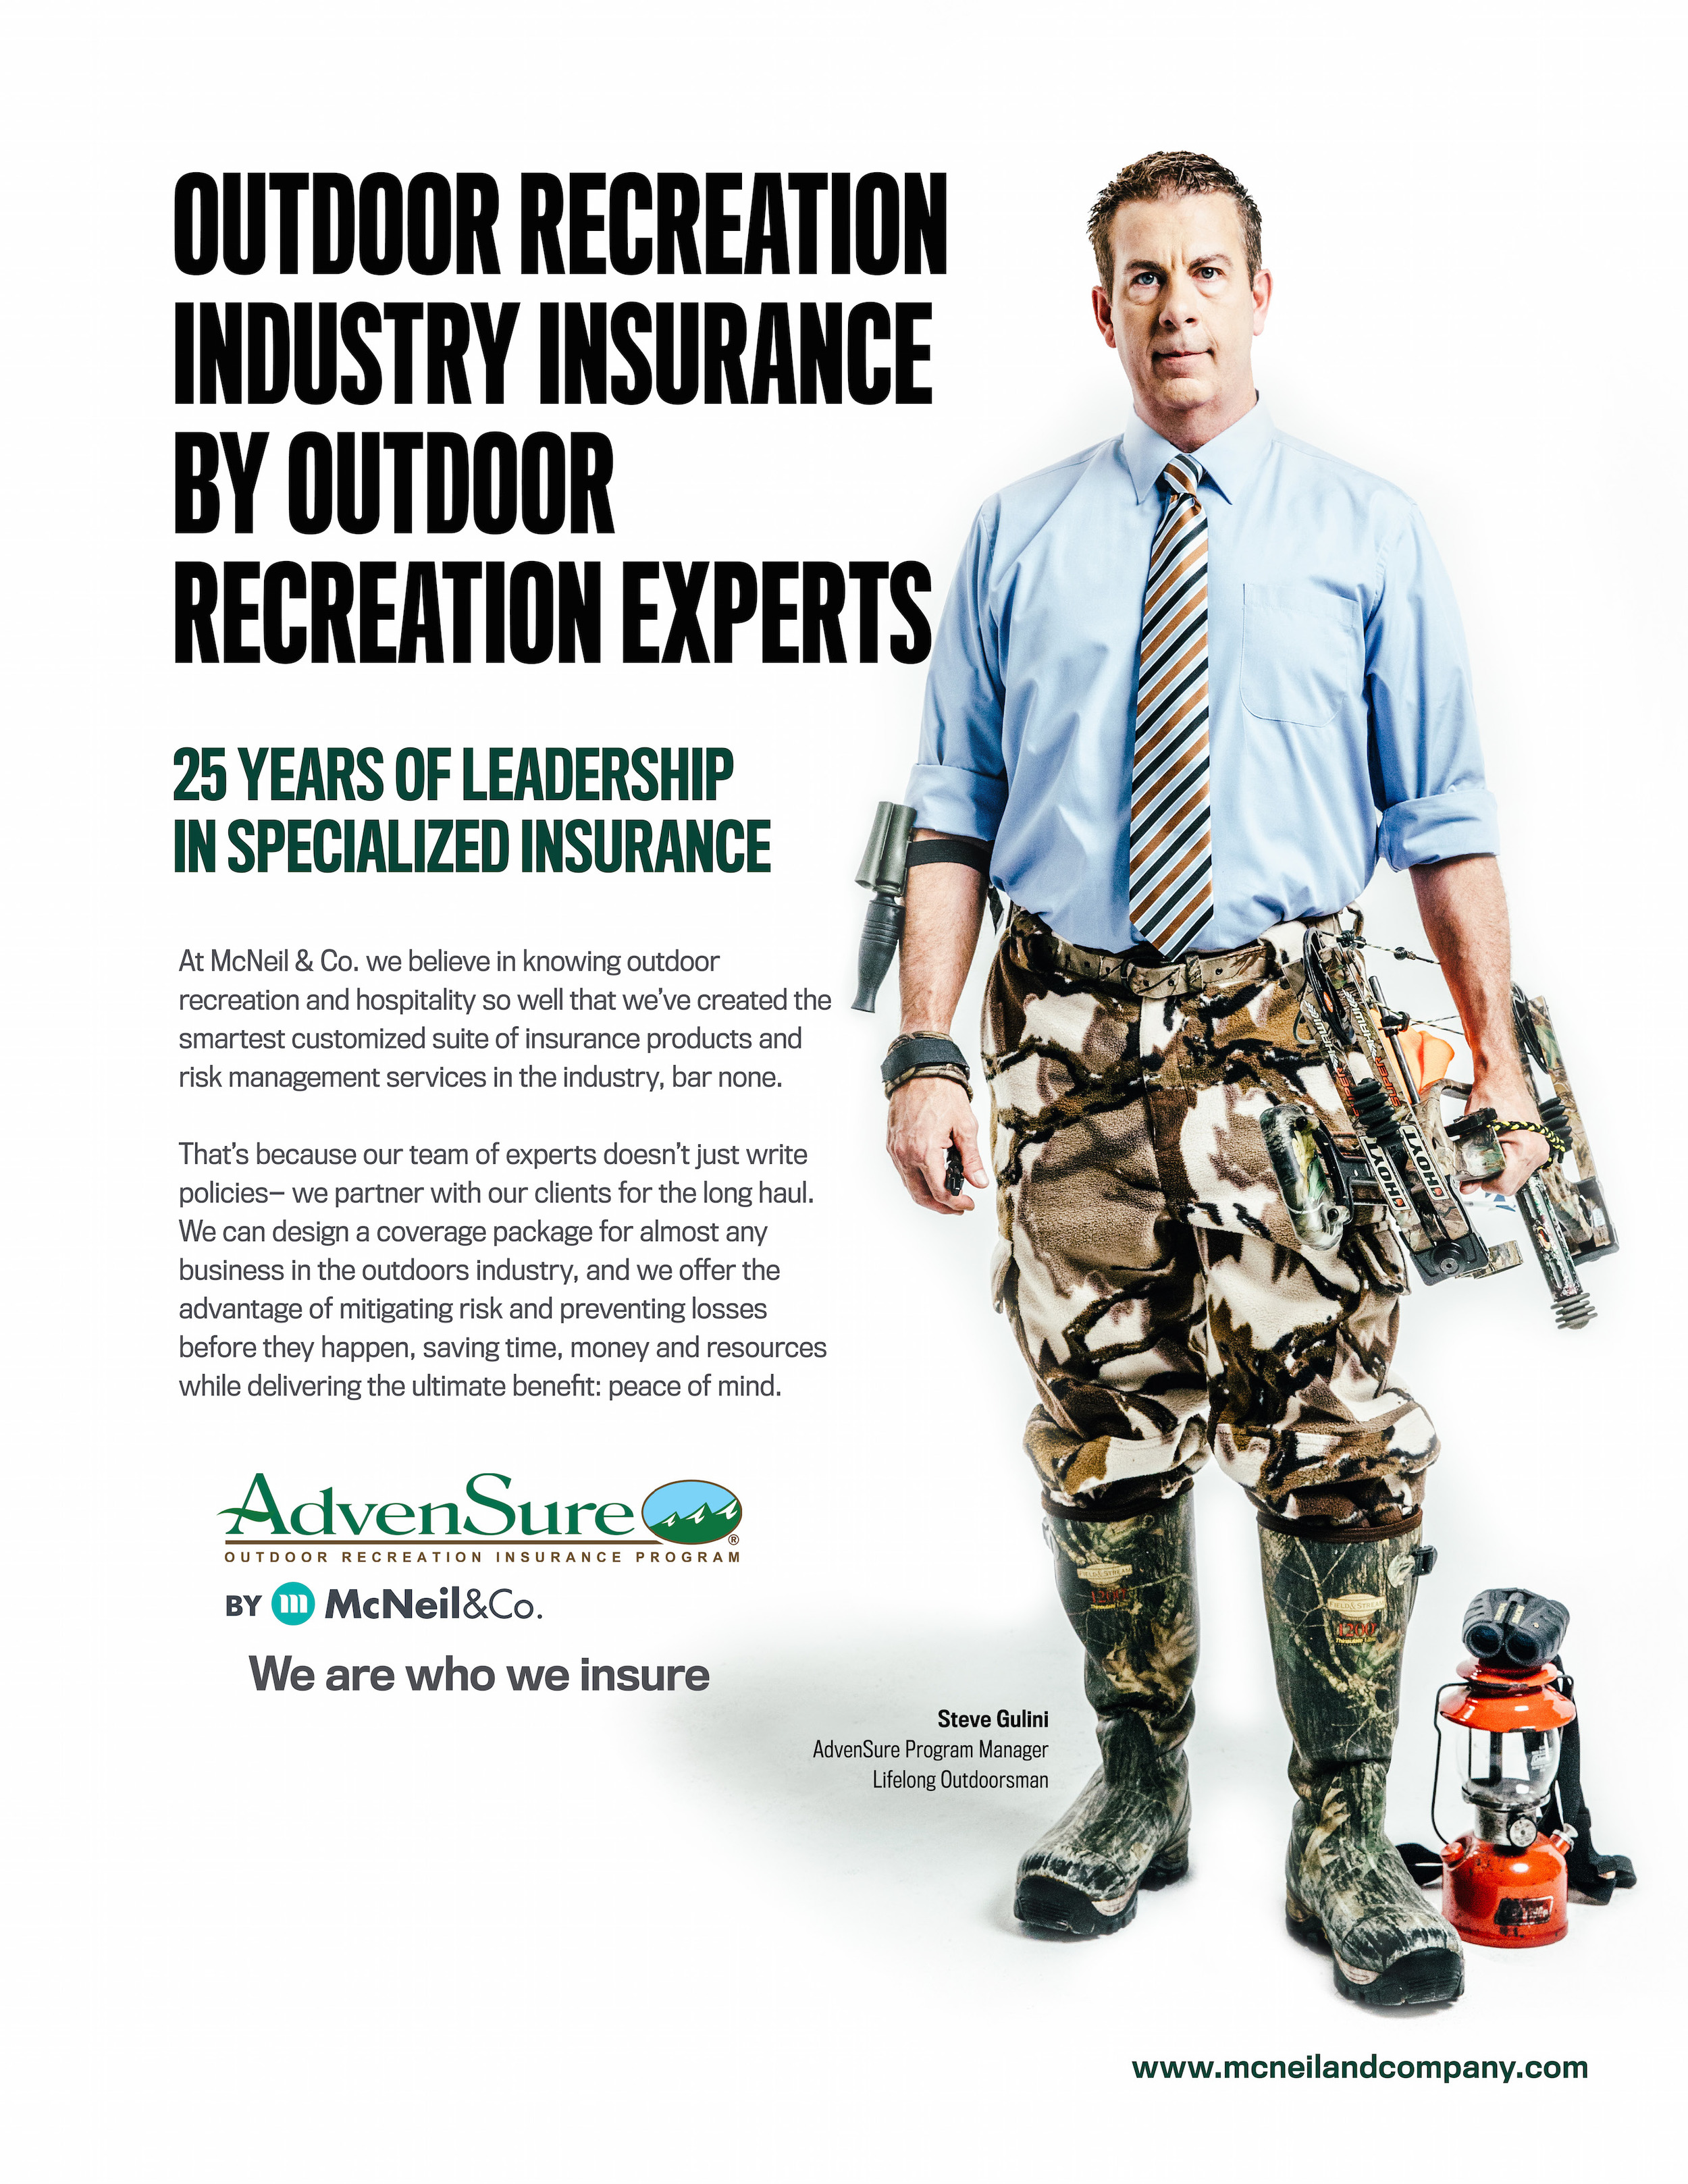 Advensure_Ad_8.5x11 copy.jpg